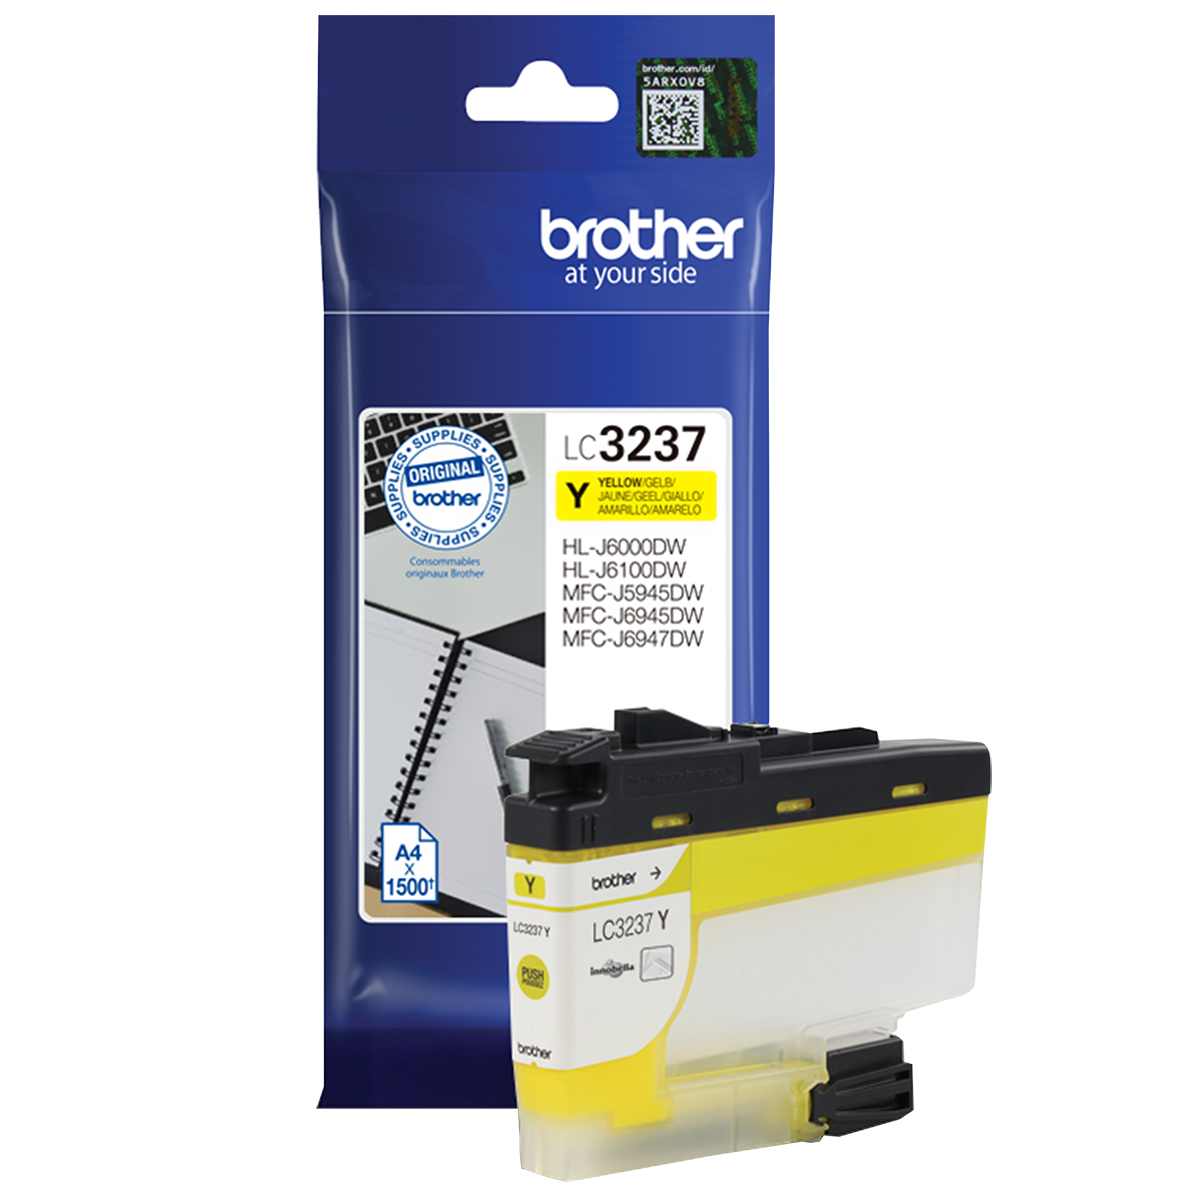 Brother LC3237Y Yellow Inkjet Cartridge